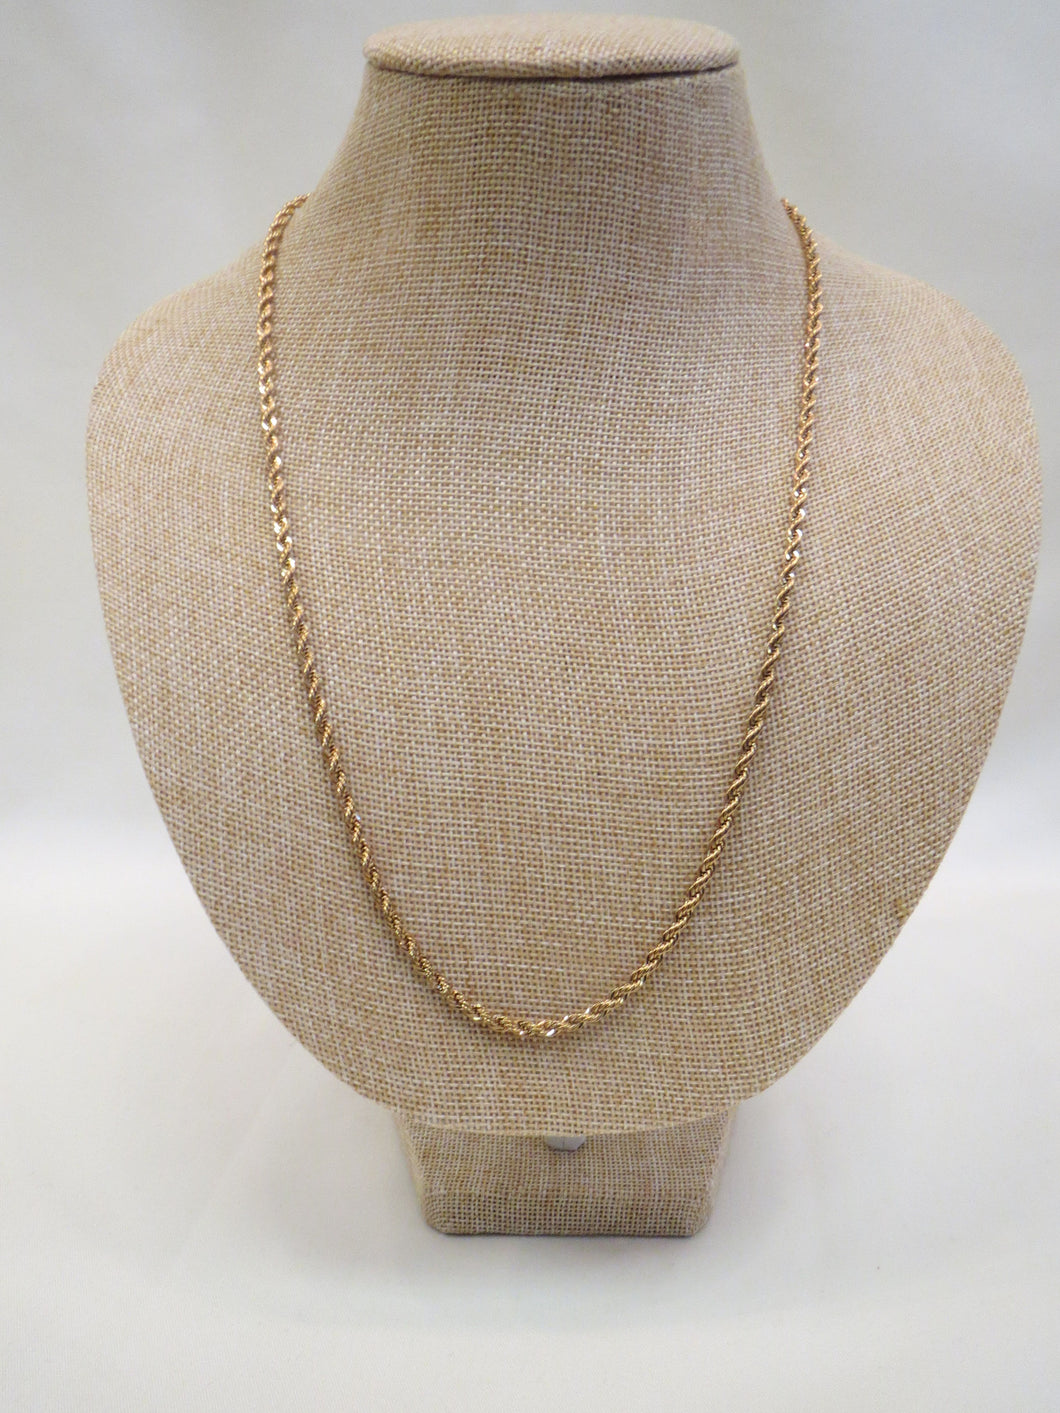 ADO | Gold Braided Thick Chain - All Decd Out